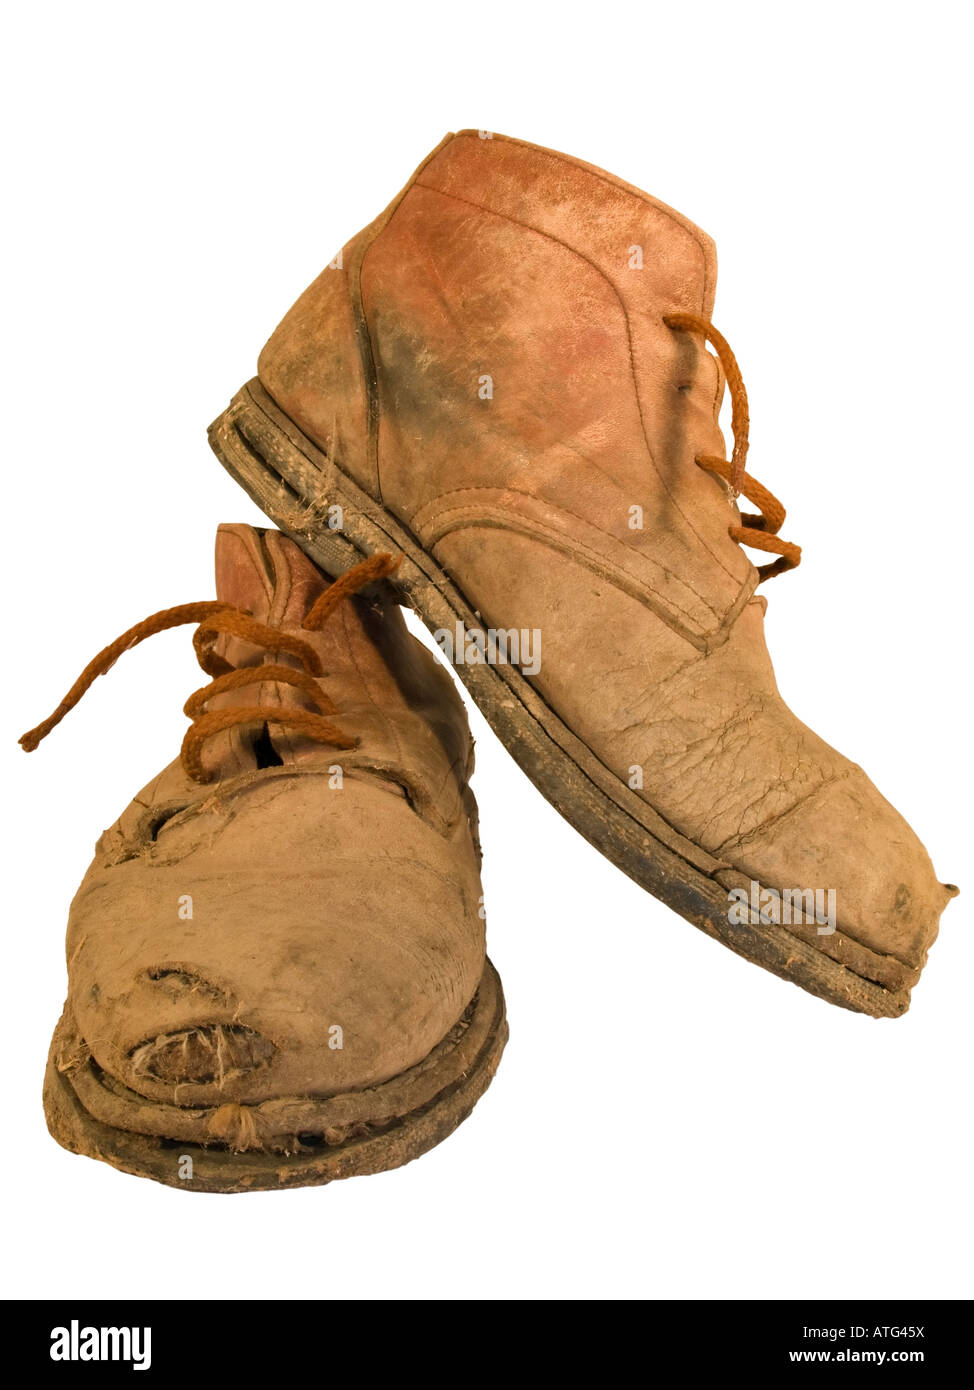 d8dea381be77f Pair Old Boots Well Worn Stockfotos & Pair Old Boots Well Worn ...